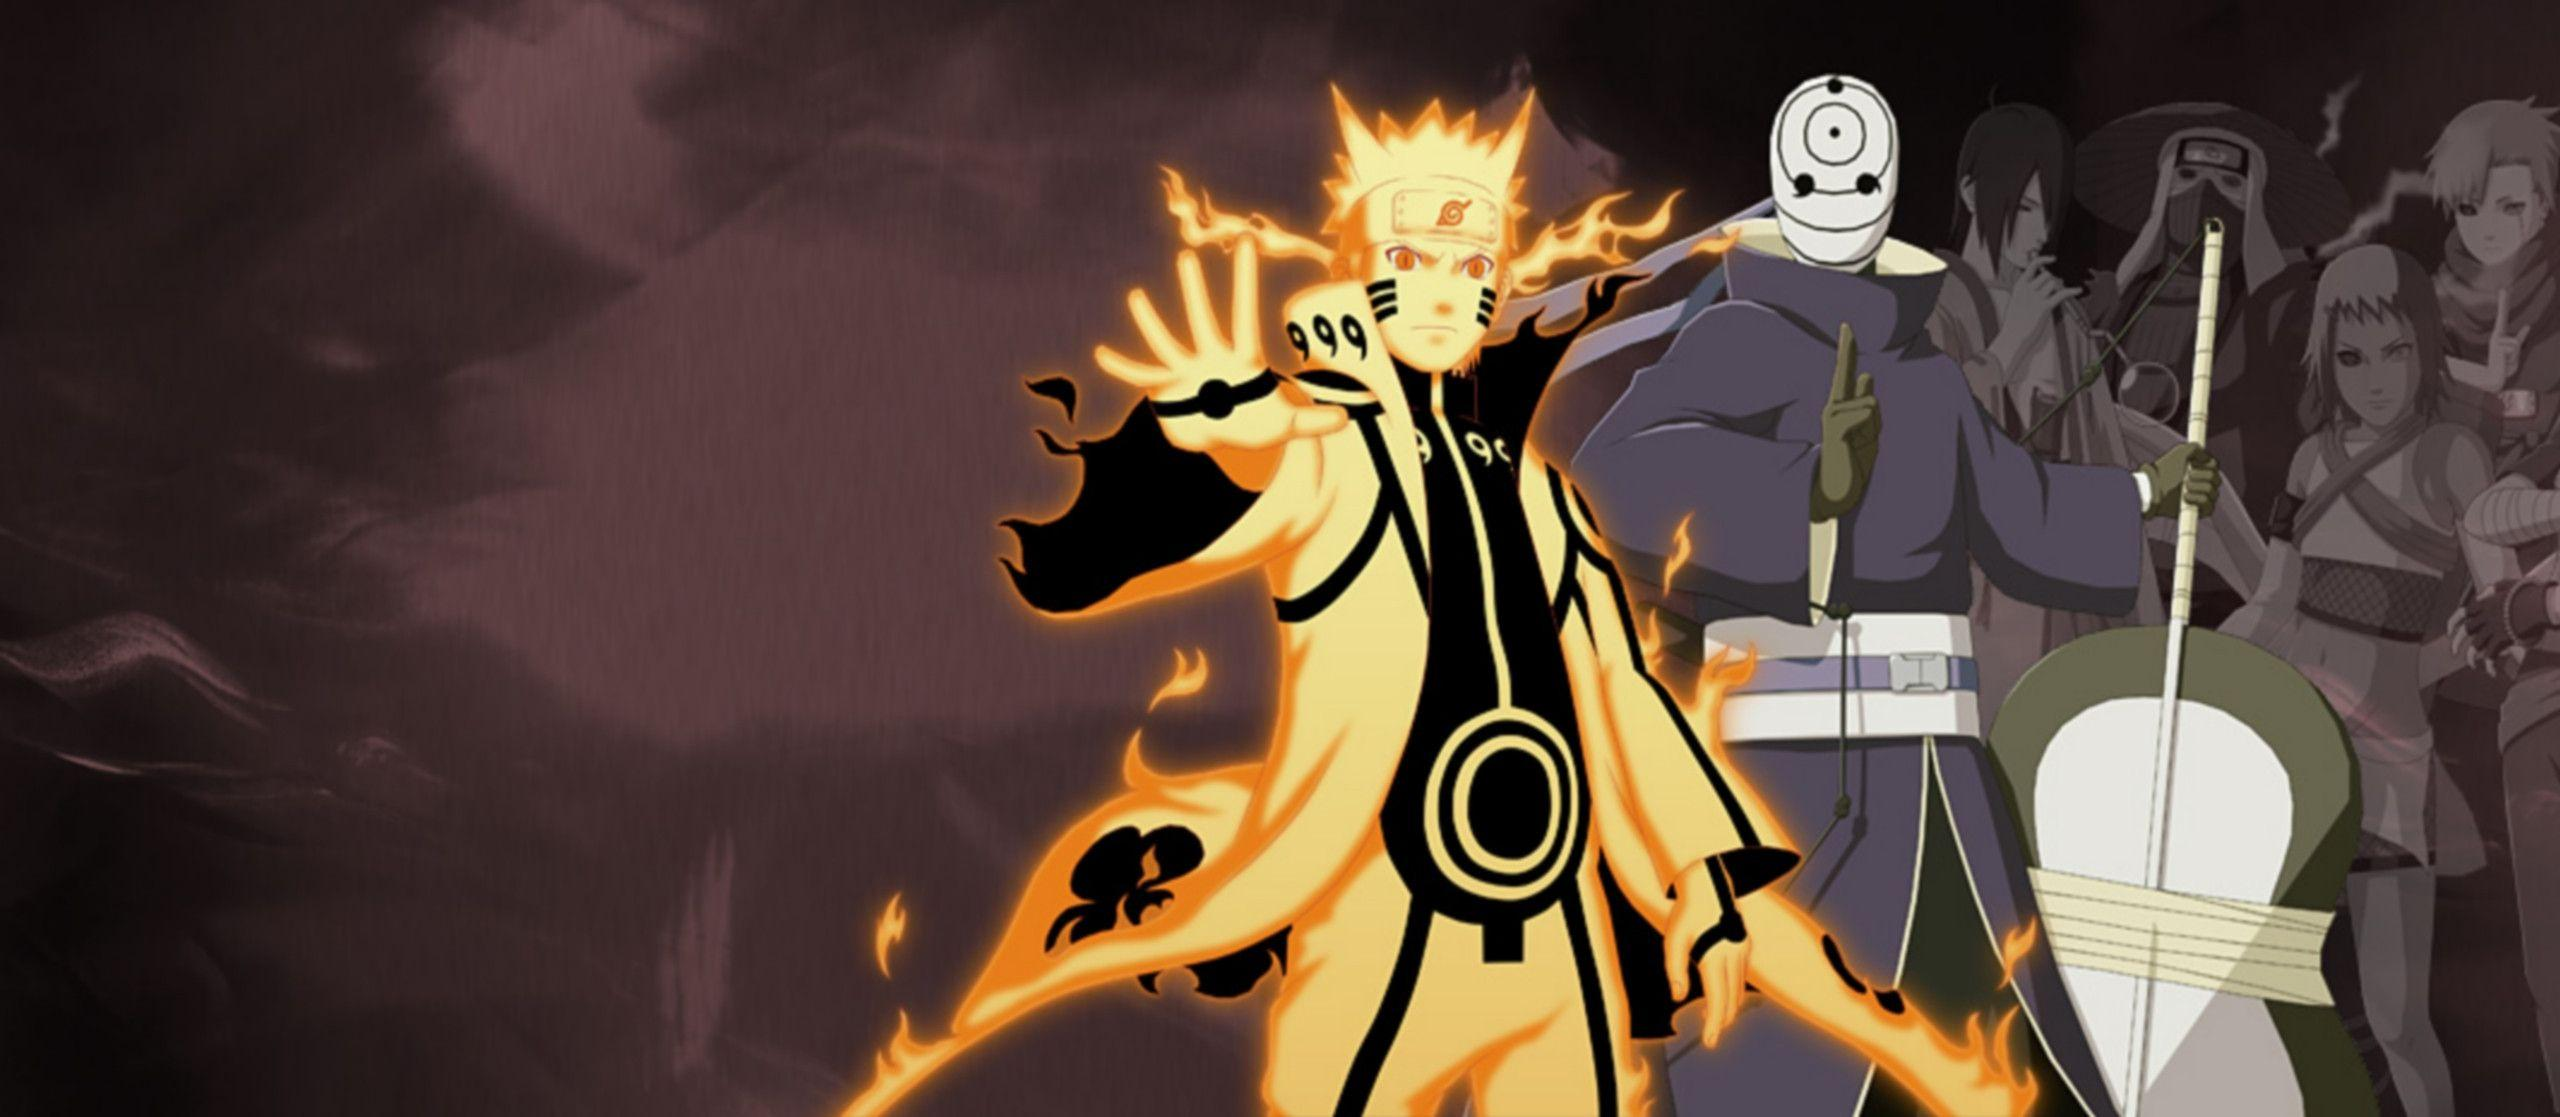 Naruto Hd Wallpapers 39338 HD Wallpapers | pictwalls.